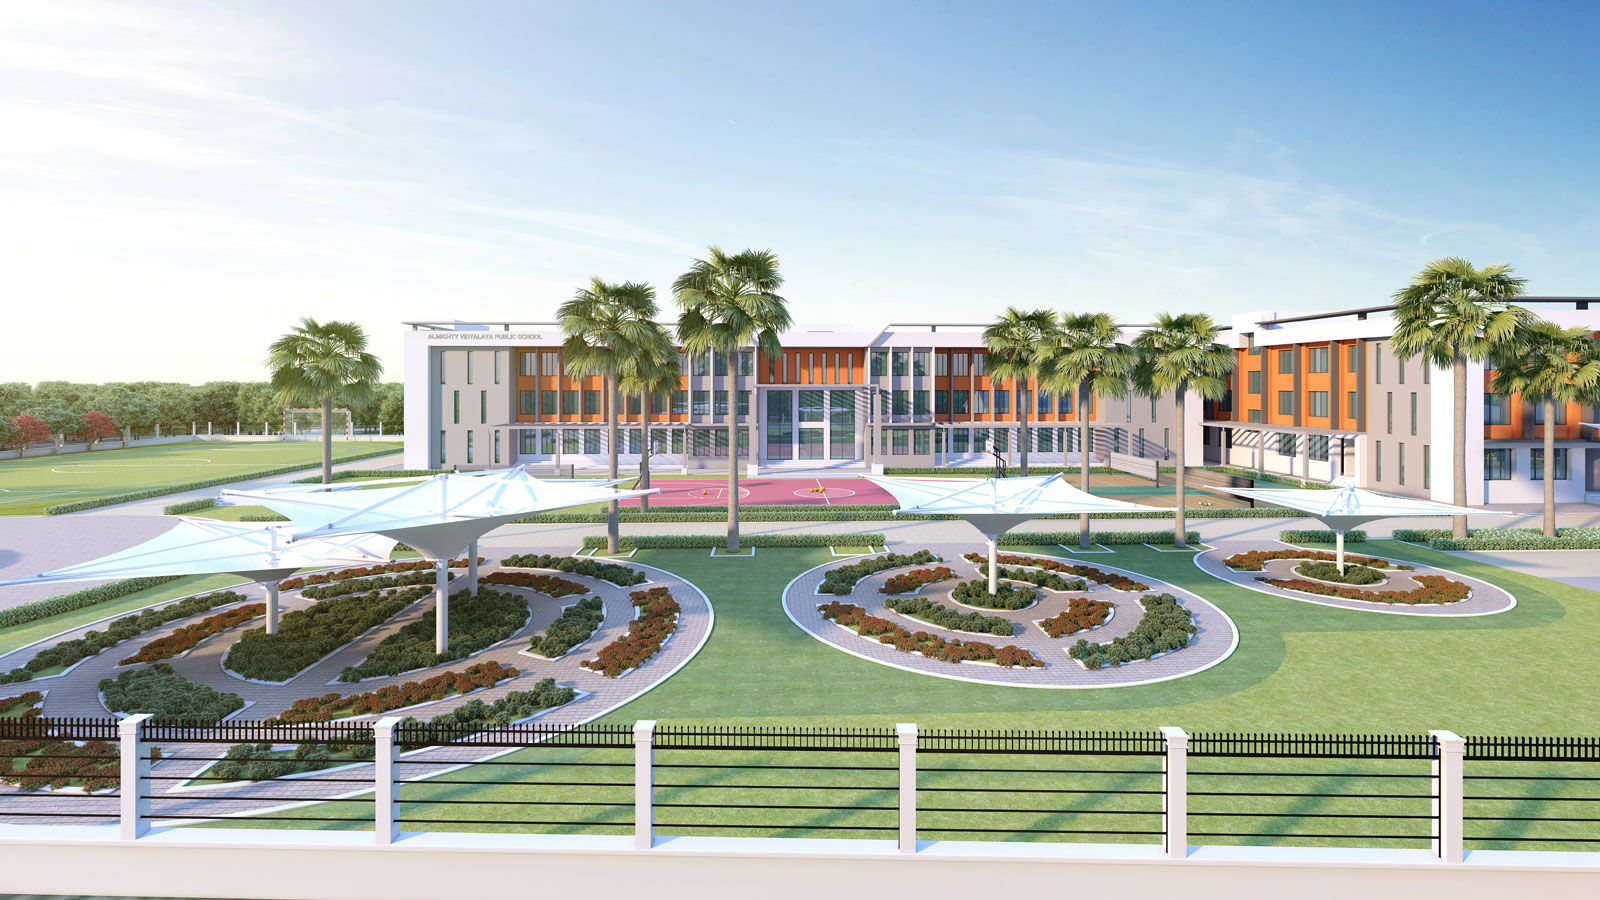 BEST ARCHITECTS FOR SCHOOL BUILDING EXPANSION